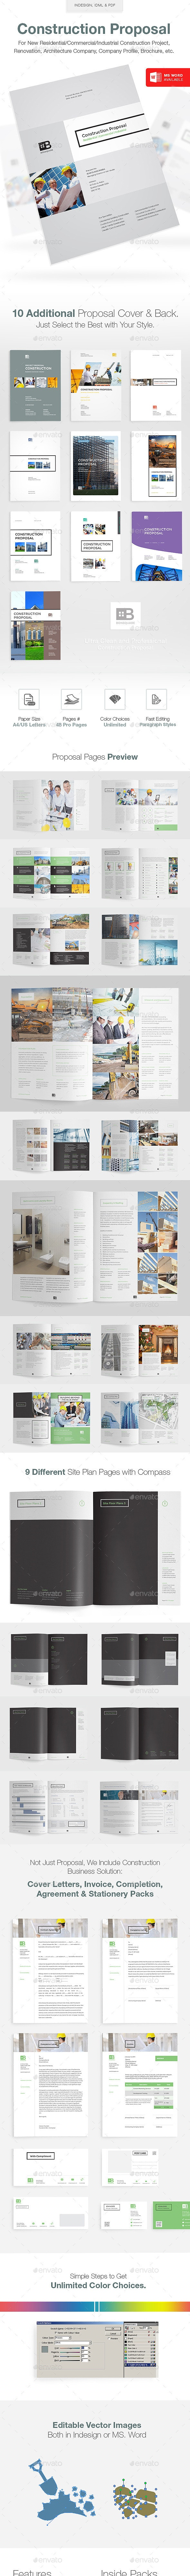 Clean Construction Proposal - Proposals & Invoices Stationery